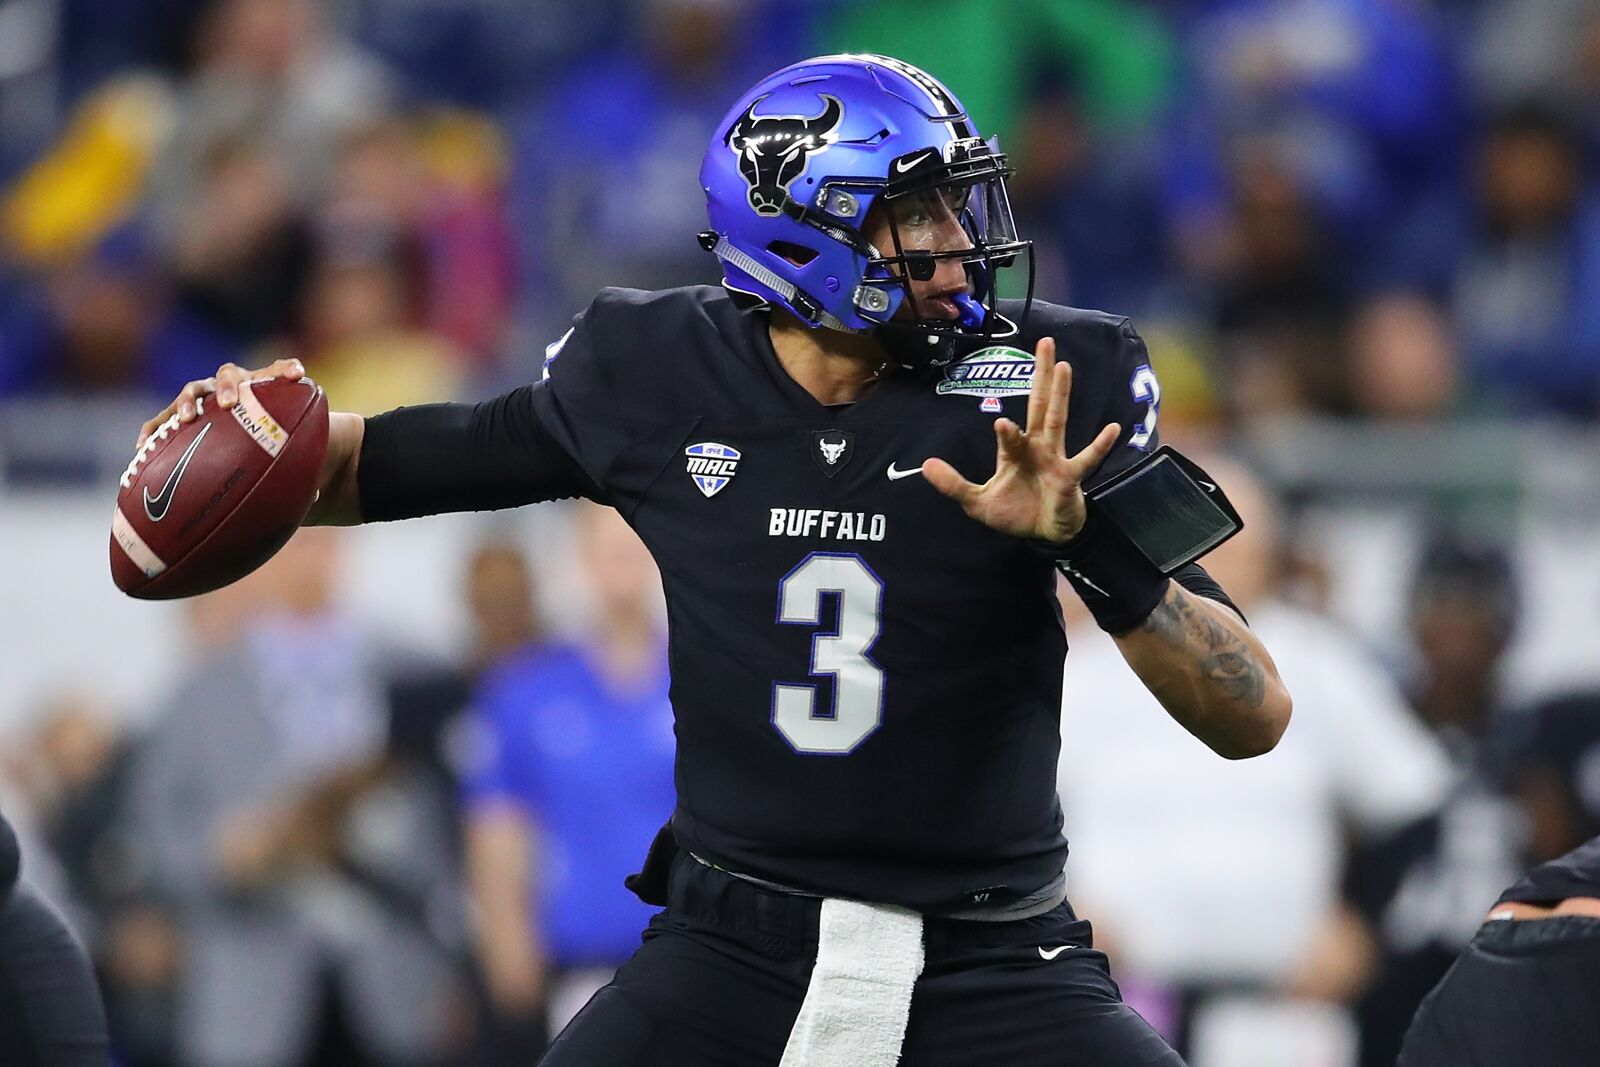 Sleeper options at quarterback the Jaguars should draft for the future